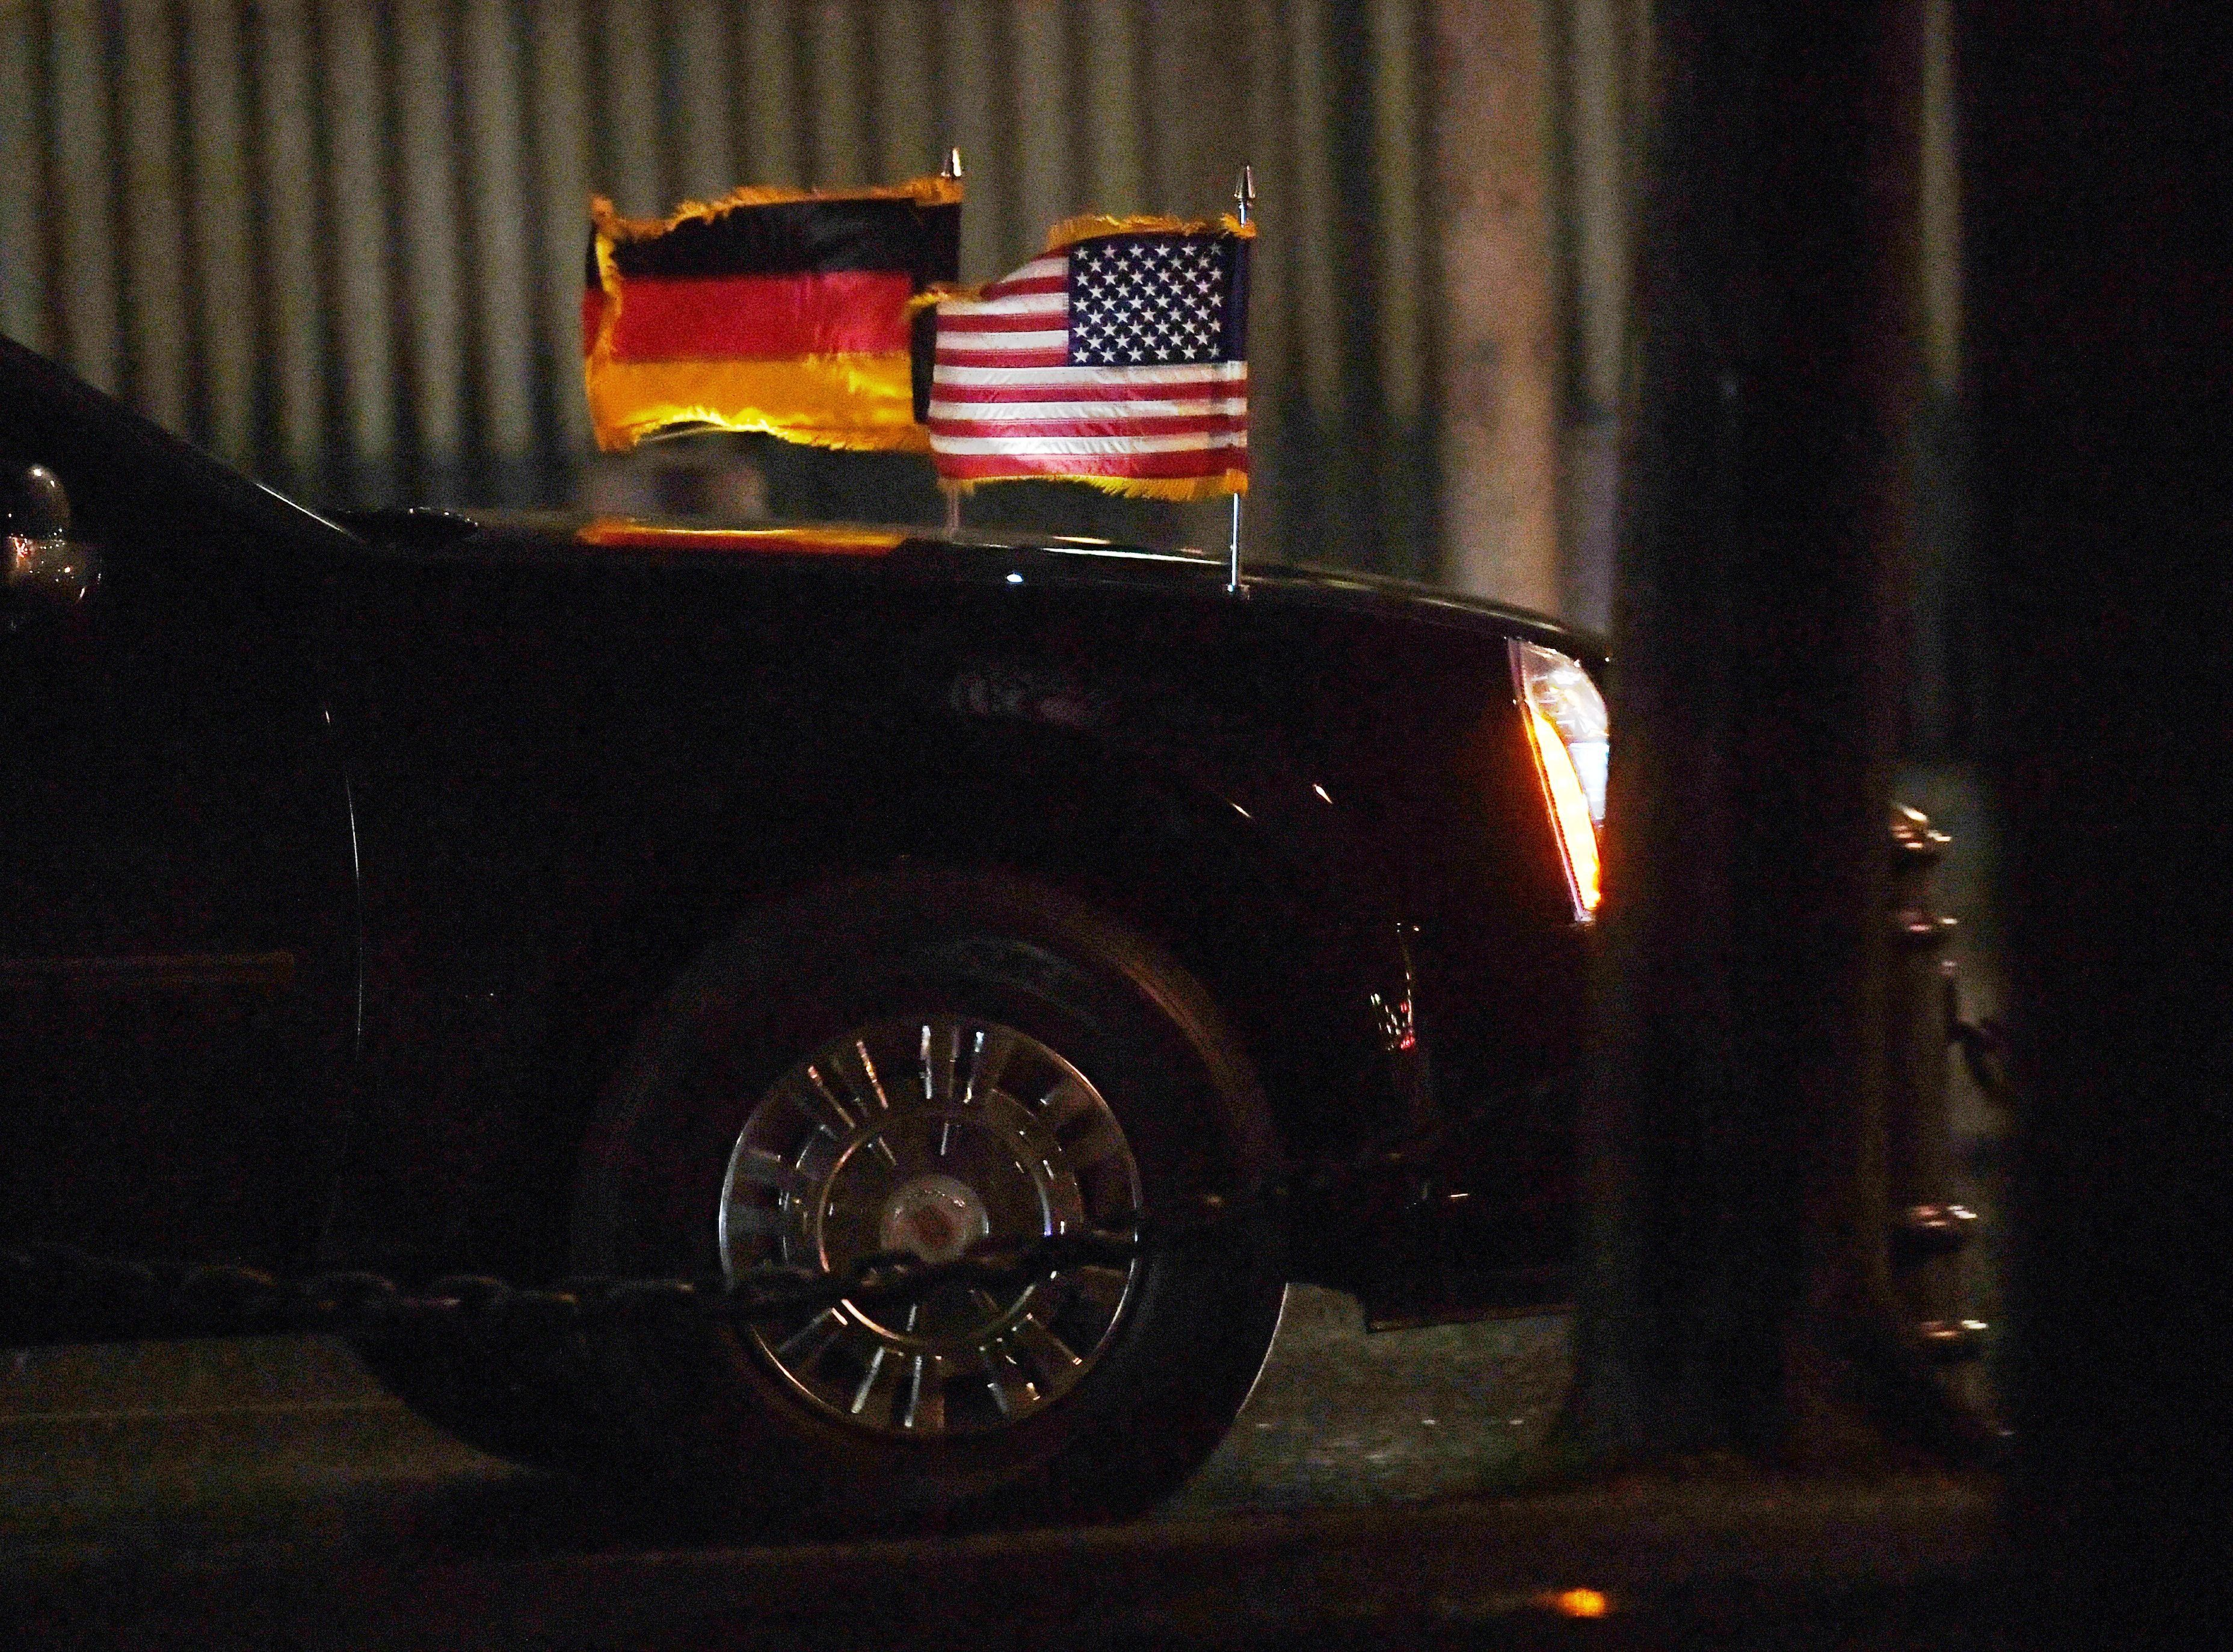 The German and US flags fly on the car of US President Barack Obama as it makes its way towards the Adalon Hotel on November 16, 2016. US President Barack Obama pays a farewell visit to German Chancellor Angela Merkel, widely seen as the new standard bearer of liberal democracy since the election of Donald Trump. / AFP / dpa / Ralf Hirschberger / Germany OUT        (Photo credit should read RALF HIRSCHBERGER/AFP/Getty Images)